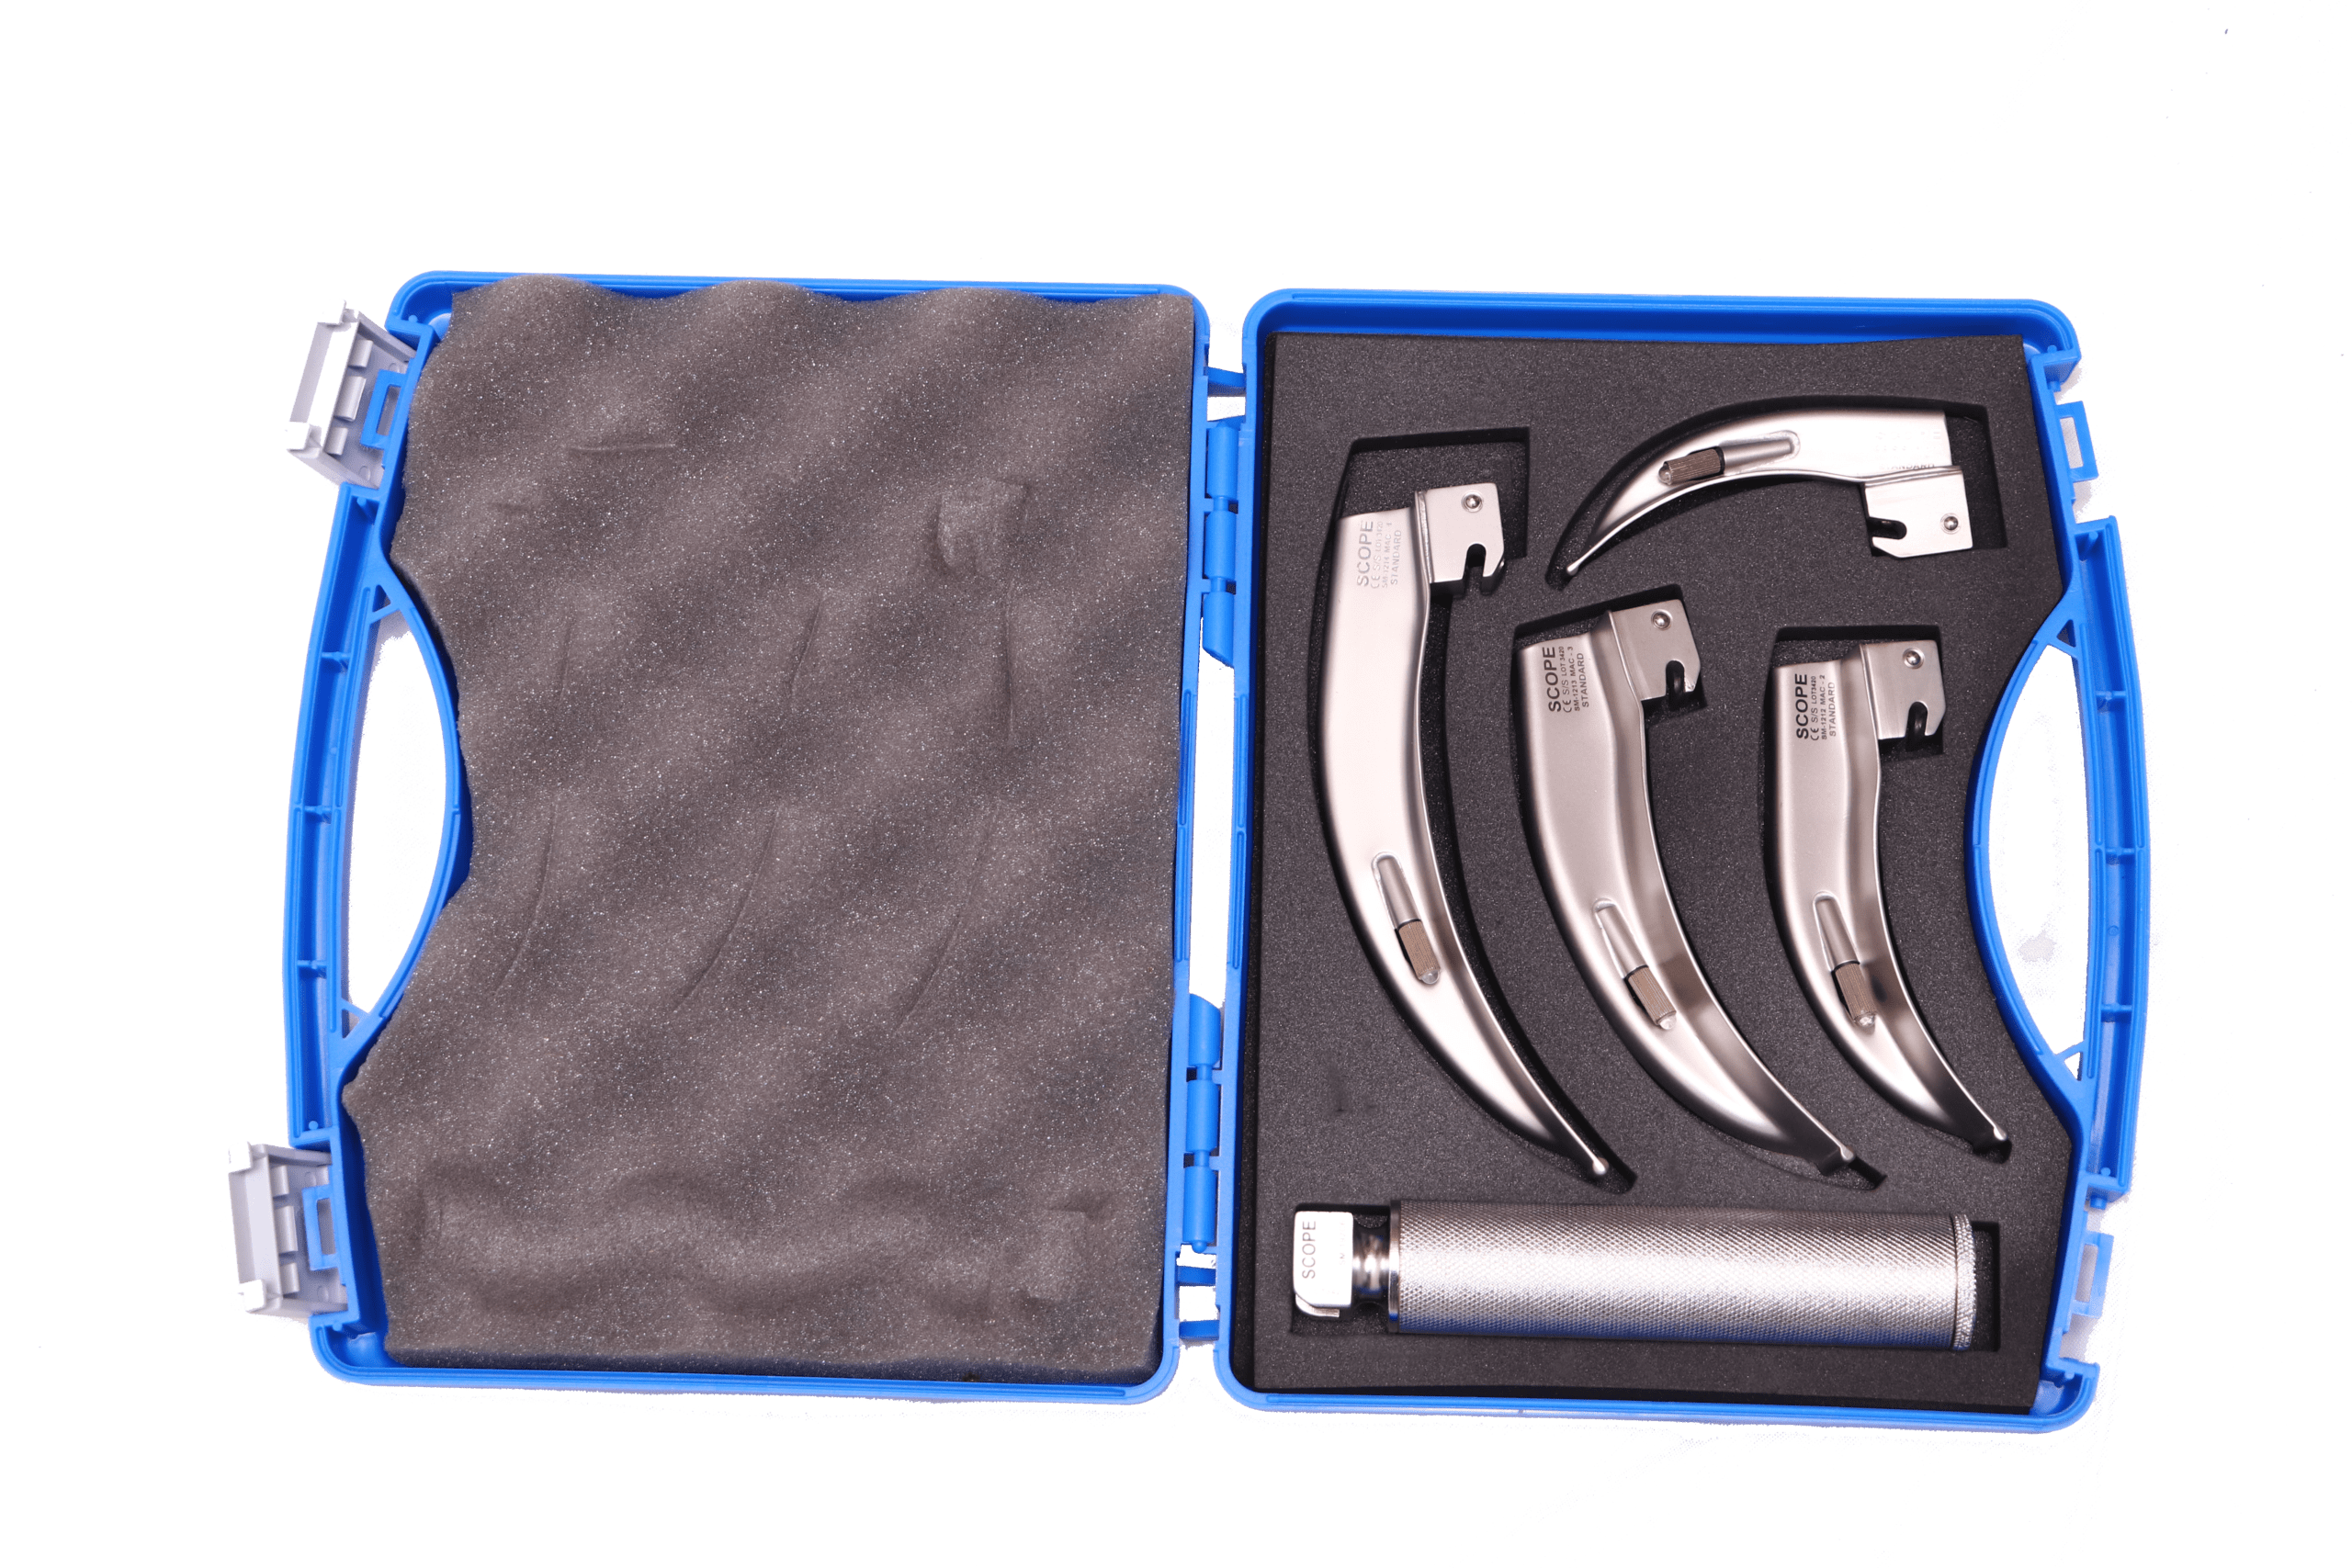 Laryngoscopy set is an endoscopy of the larynx, a part of the throat. It is a medical procedure that is used to obtain a view of the vocal folds and the glottis.